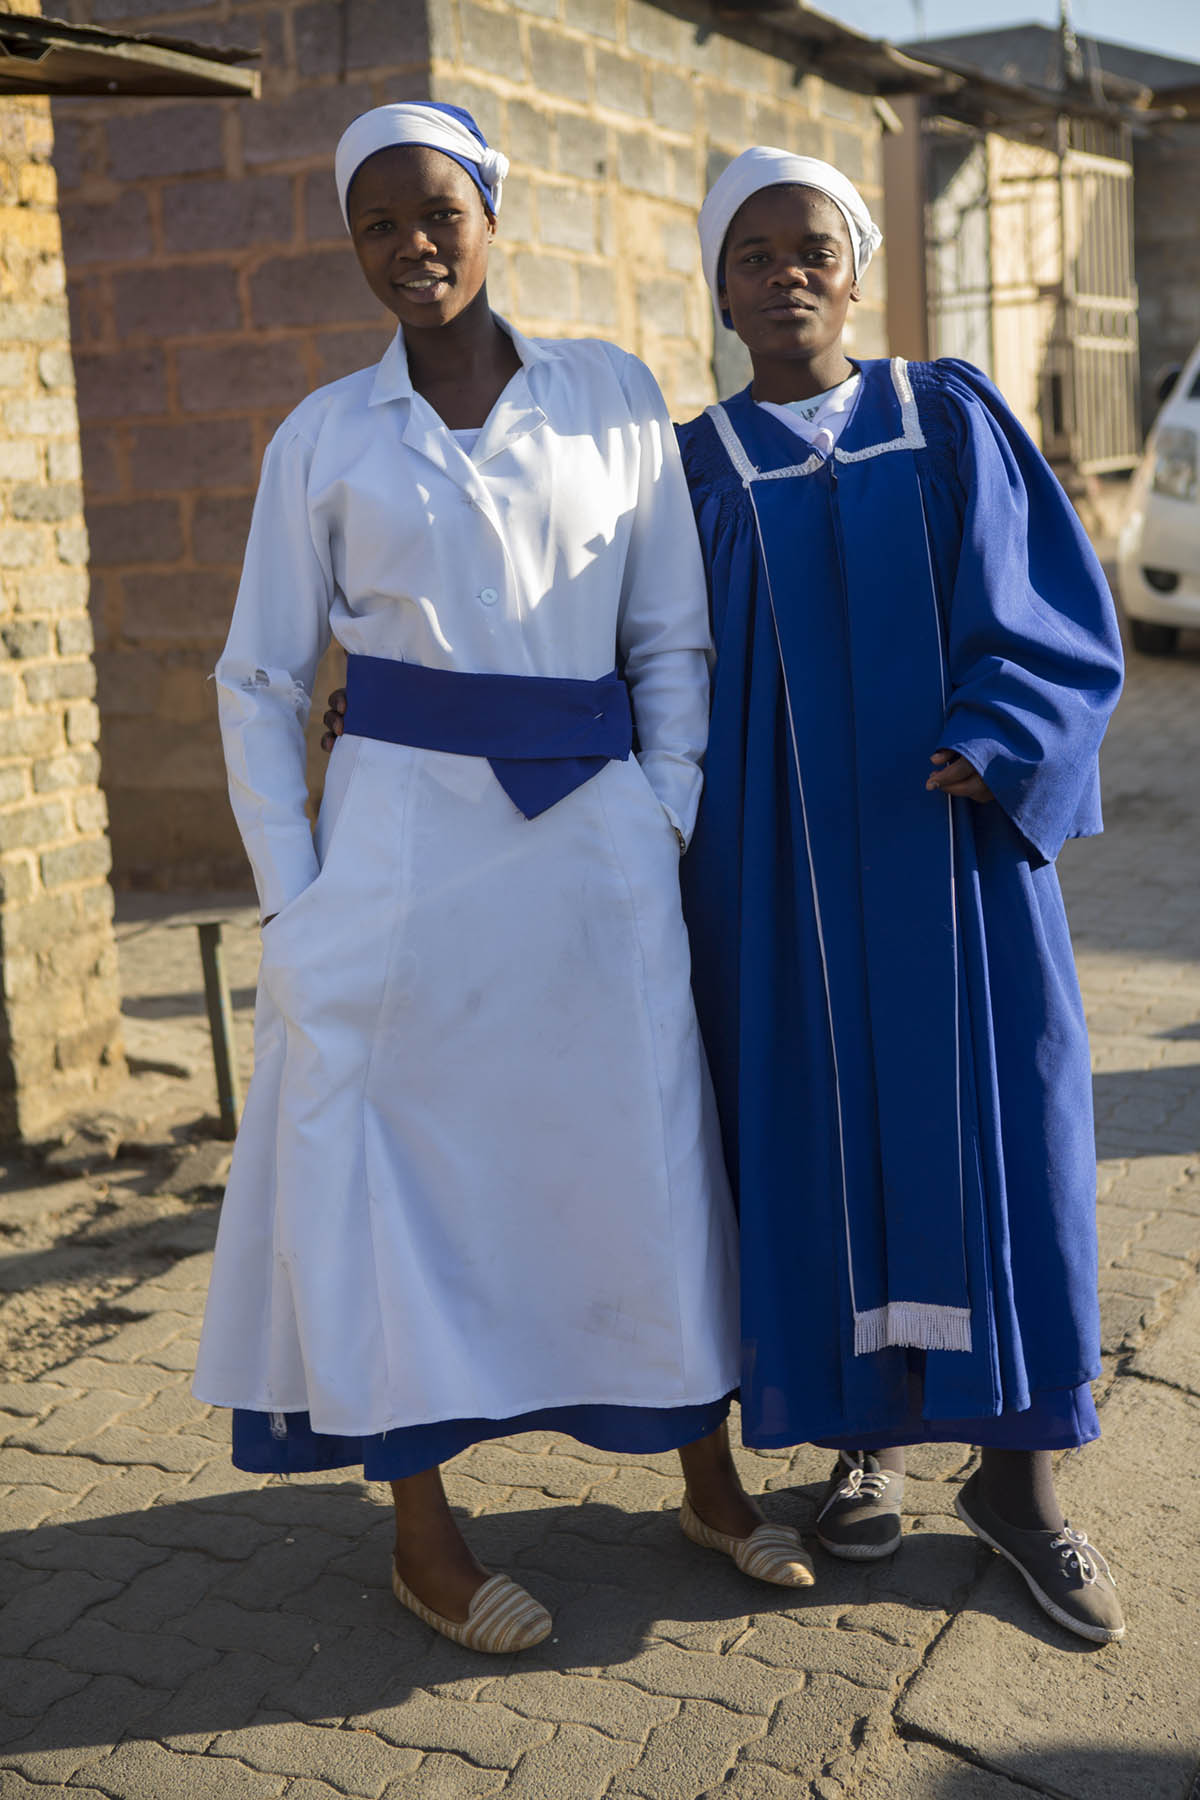 Sonelai Gakane, Sinazo Makunge, both 18 years old, were dancing in the street just before this photo was taken. They were still enthralled in the fervor of the church service they had attended.